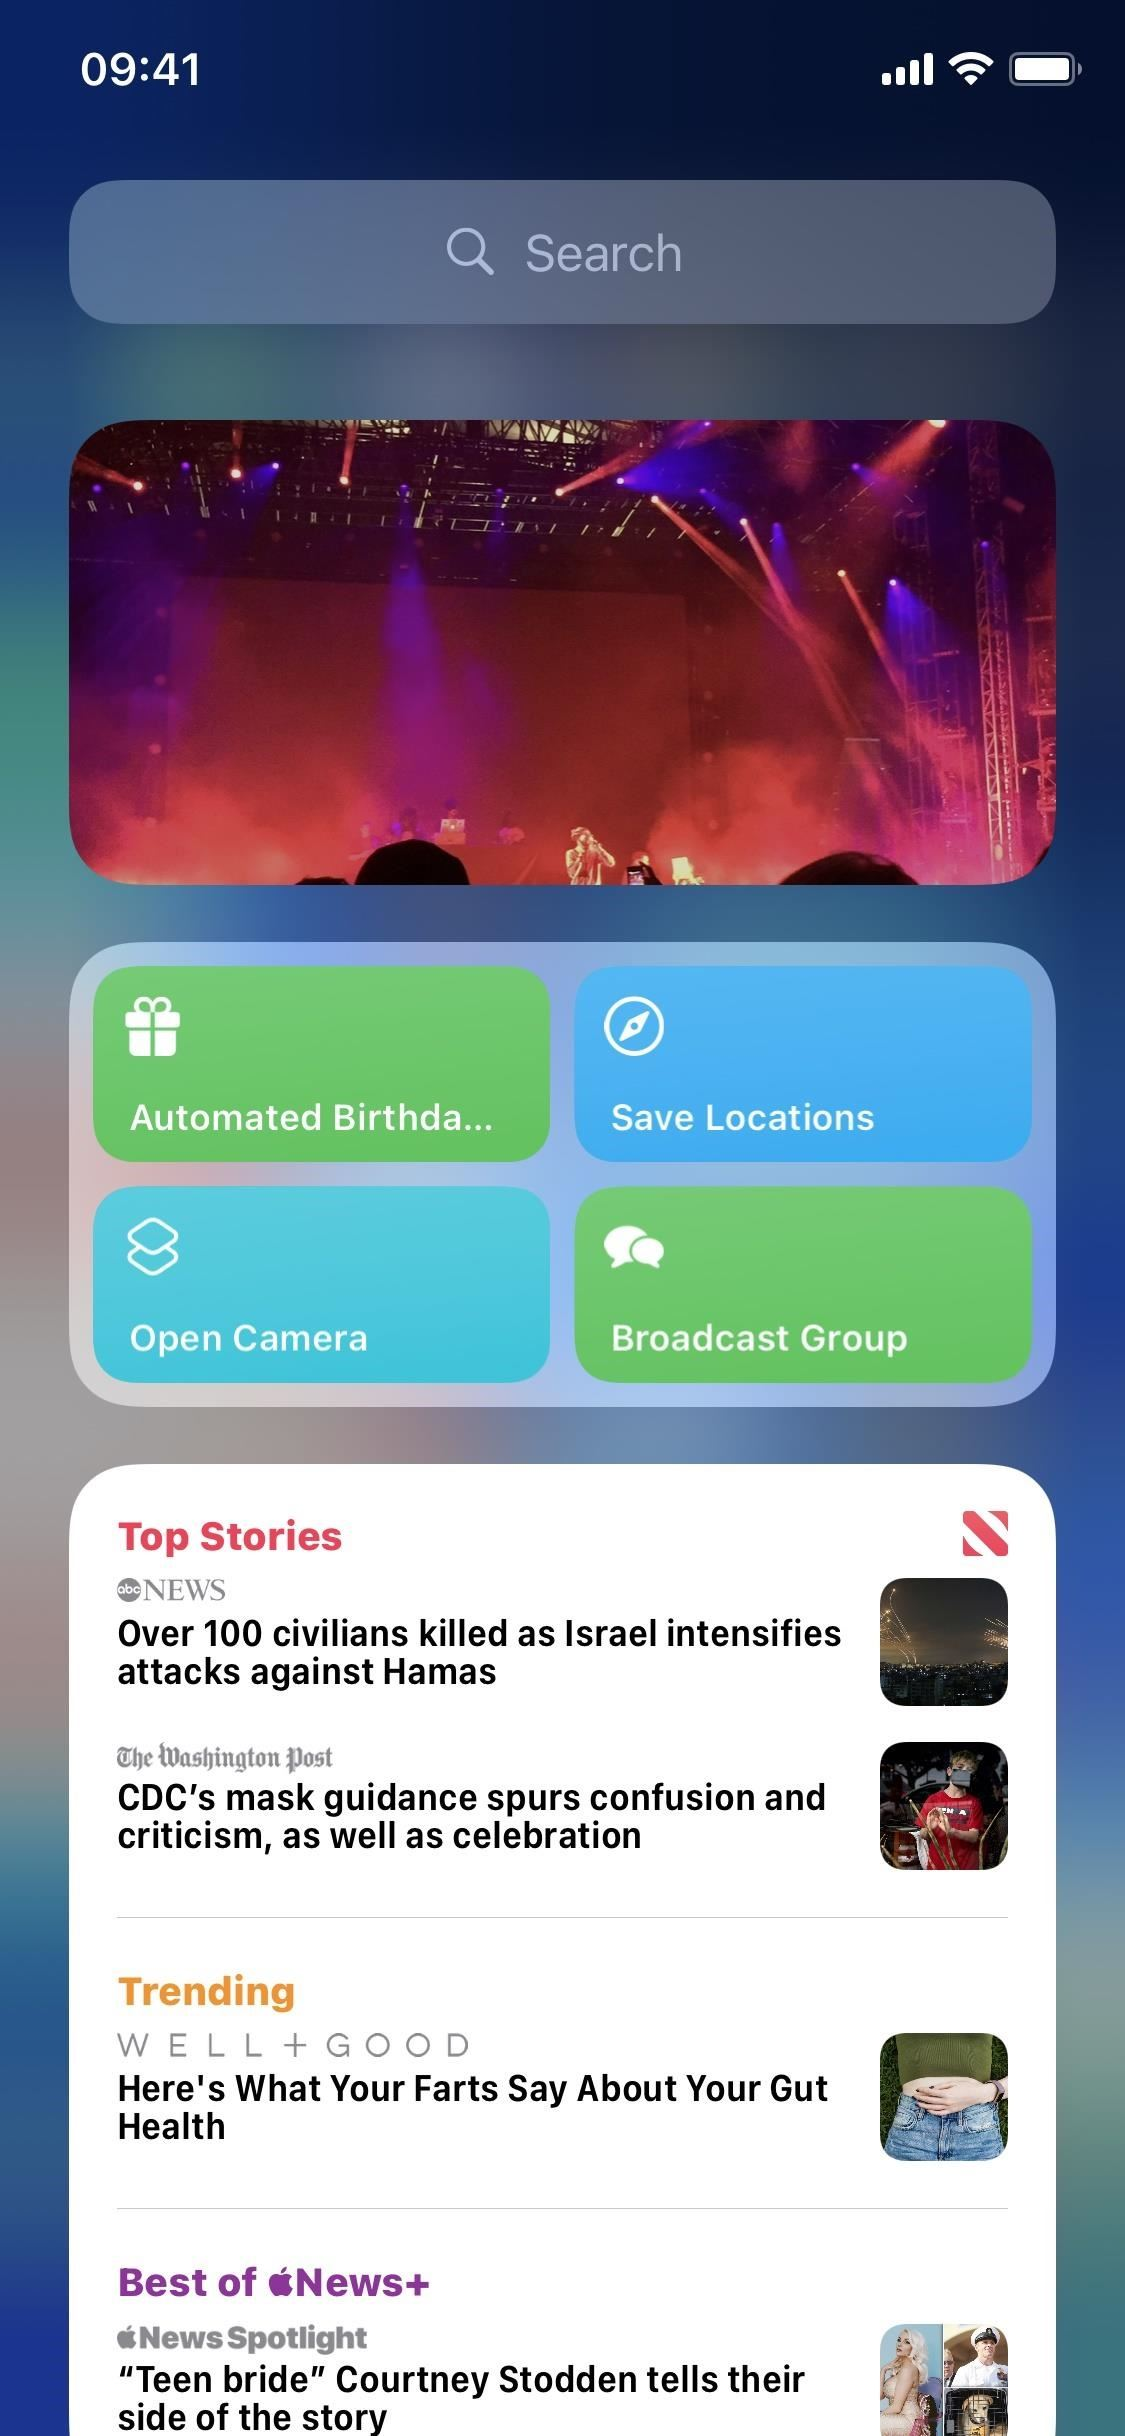 Remove the Annoying Photos Widget from Your iPhone's Today View to Stop Showing Potentially Embarrassing Pics